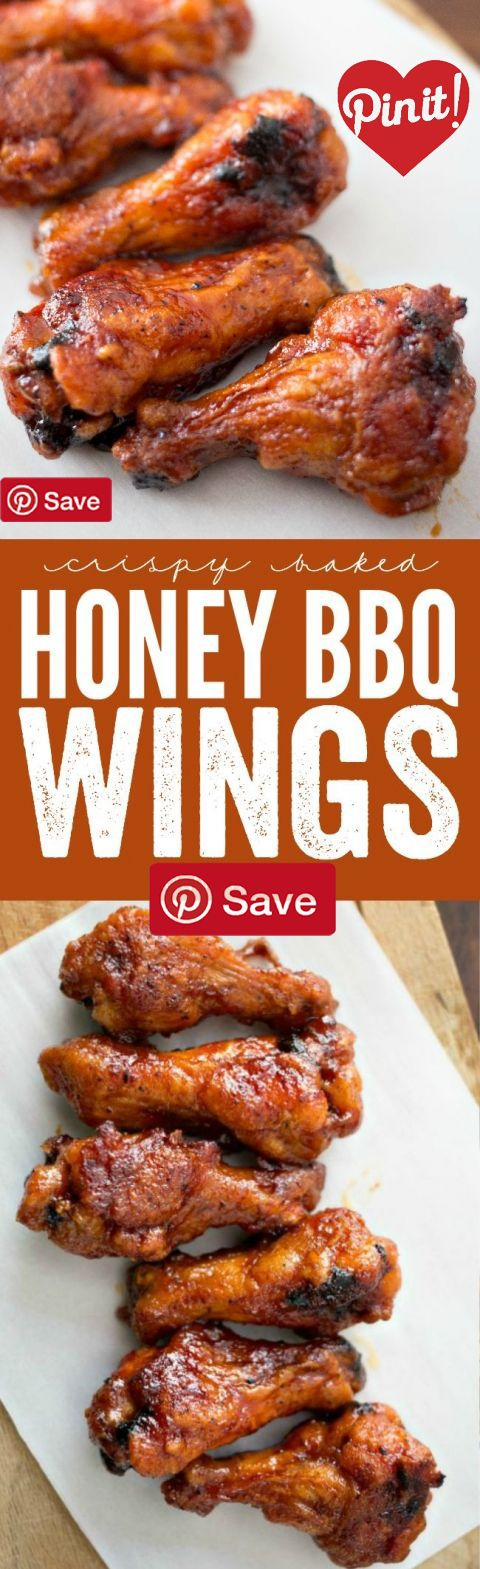 Crispy Baked Honey BBQ Wings - Ingredients  Meat  18 Chicken wings  Produce  1  tsp Powdered garlic  Condiments  1 cup Barbecue sauce   cup Honey  2 tbsp Hot sauce  Baking & Spices   tsp Black pepper   tsp Chili powder   cup Flour  1 tsp Salt  Oils & Vinegars  1 Cooking spray  Dairy  4 tbsp Butter #delicious #diy #Easy #food #love #recipe #recipes #tutorial #yummy @mabarto - Make sure to follow cause we post alot of food recipes and DIY we post Food and drinks gifts animals and pets and…